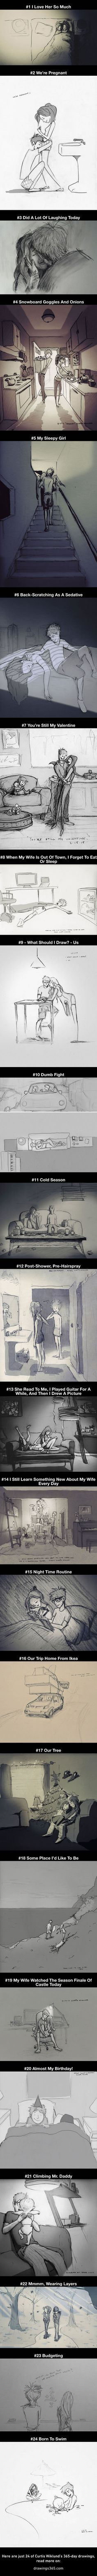 This Guy Illustrated Every Single Day He Spent With His Beloved Wife (24 Pics) By Curtis Wiklund